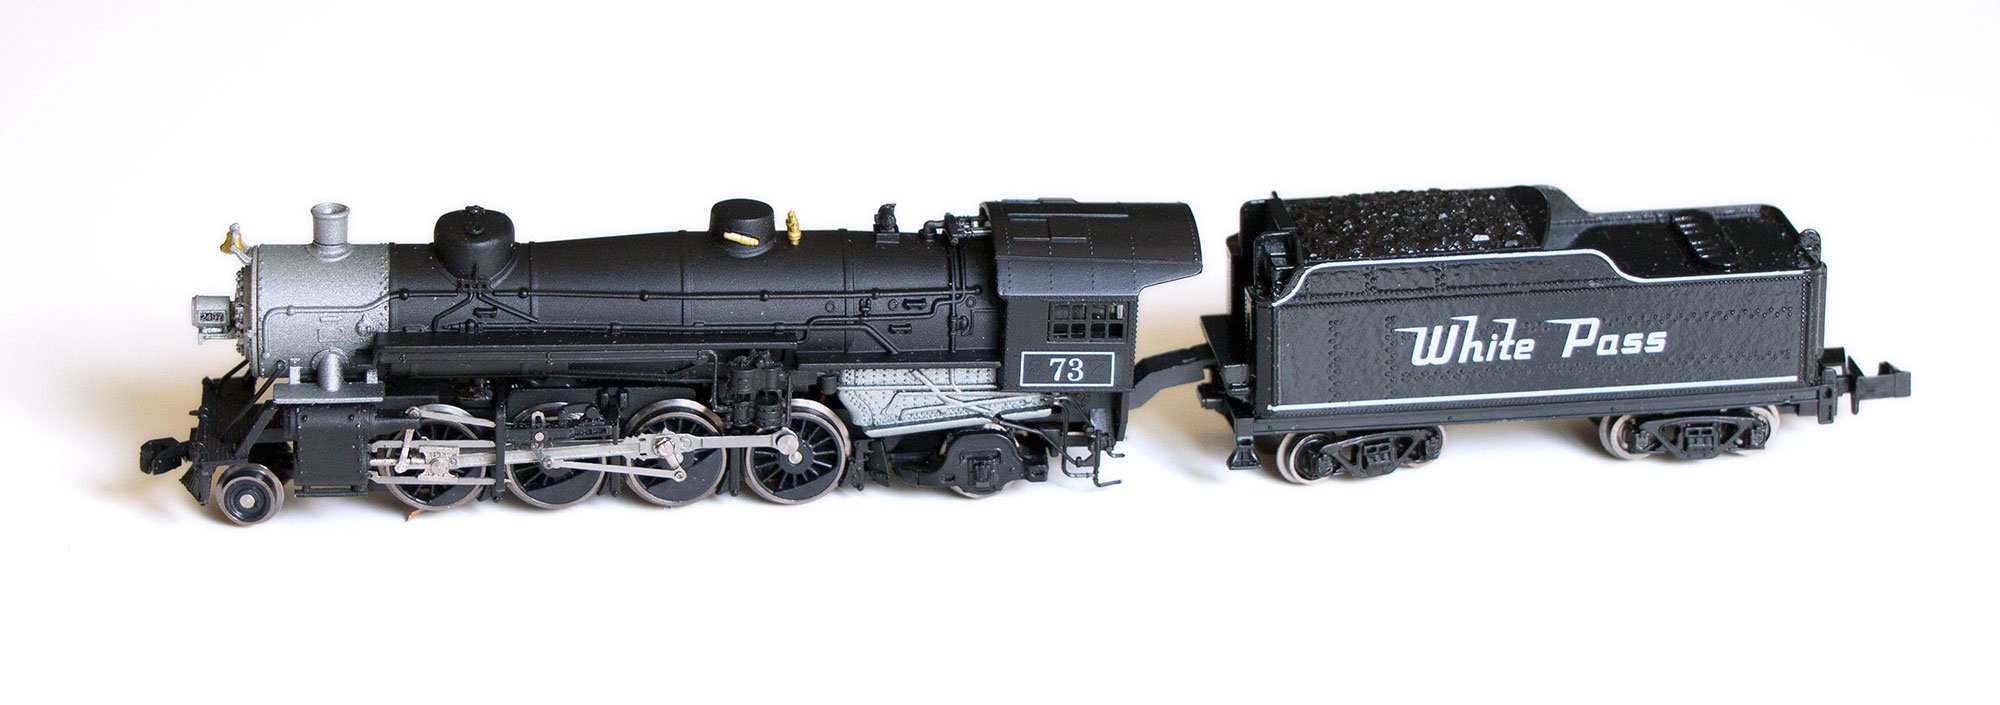 Scale steam locomotives for sale n scale steam locomotives - Scale Steam Locomotives For Sale N Scale Steam Locomotives 31